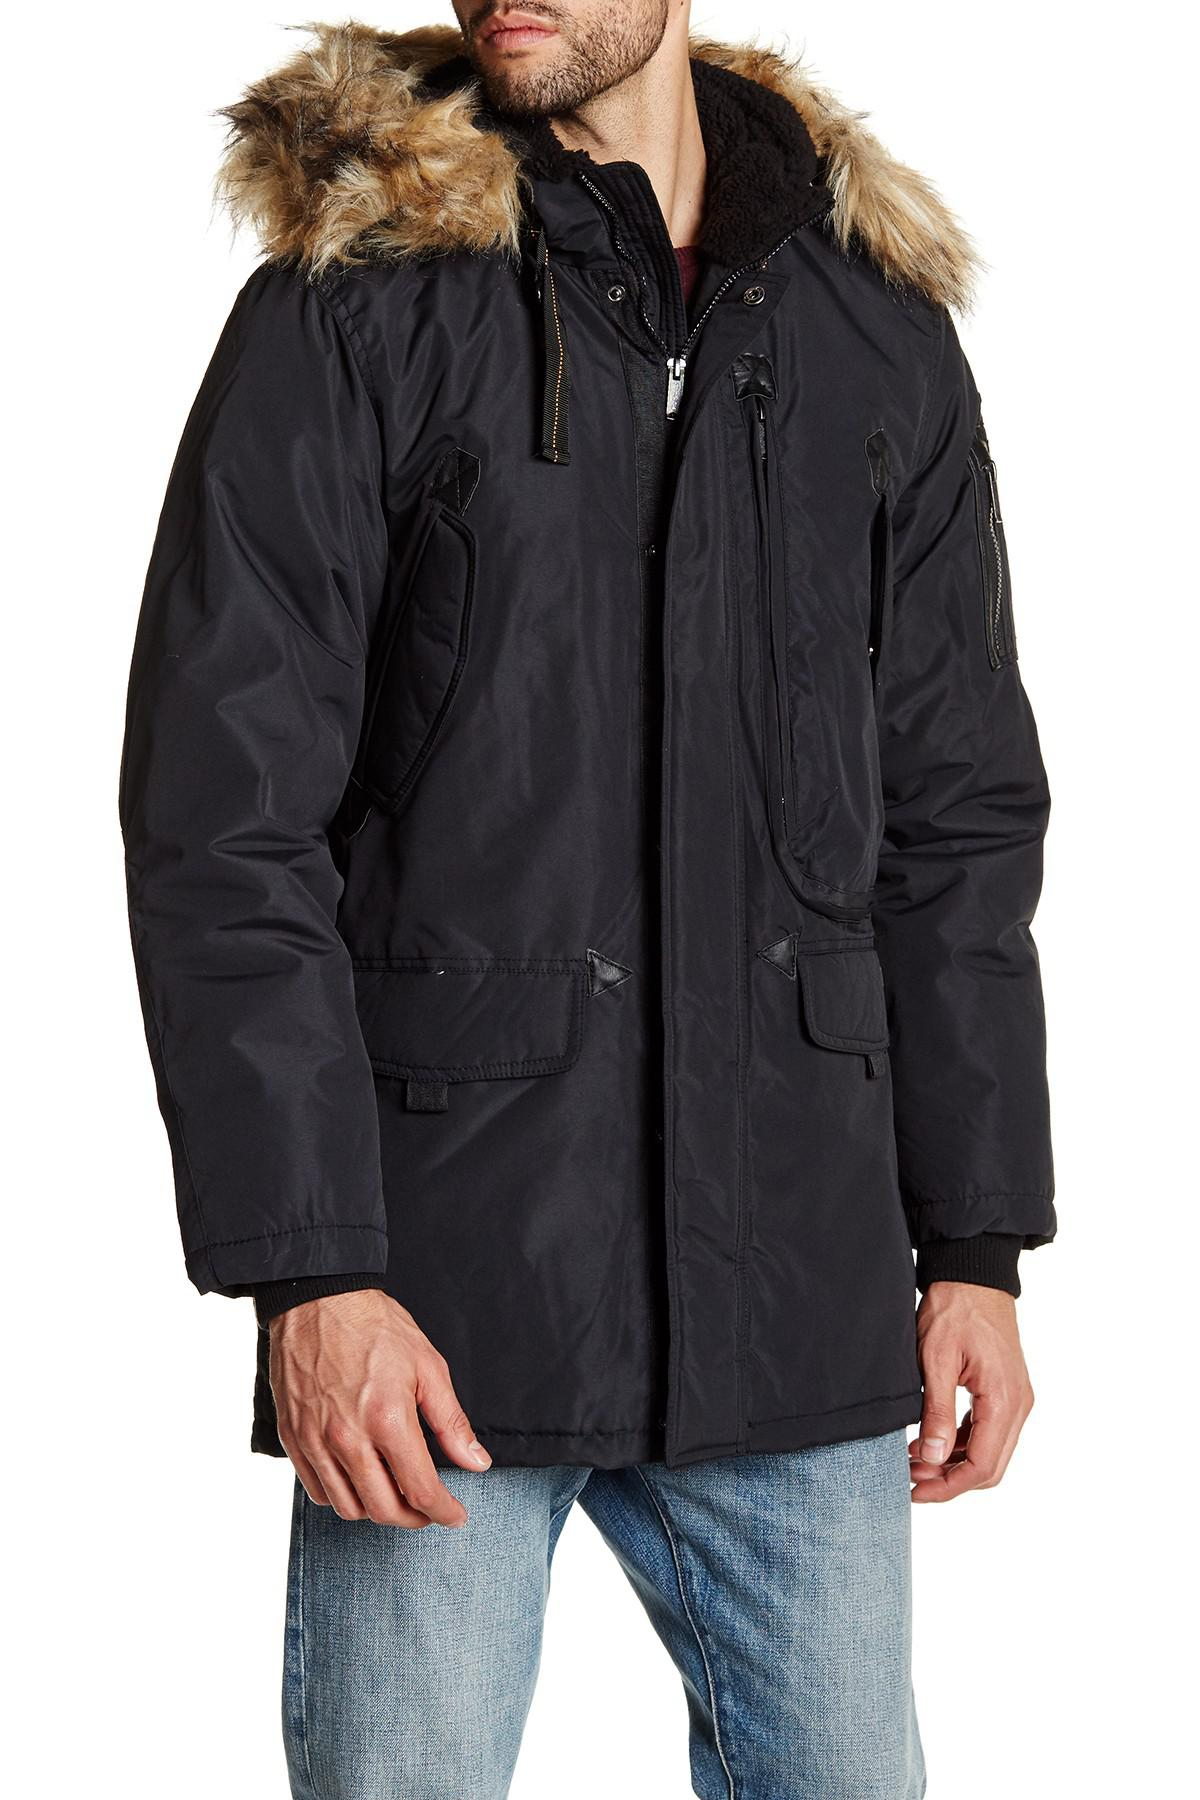 Men Hooded Jacket In Lyst For Fur Sherman Black Faux Parka Trim Ben w0xqPpXx7